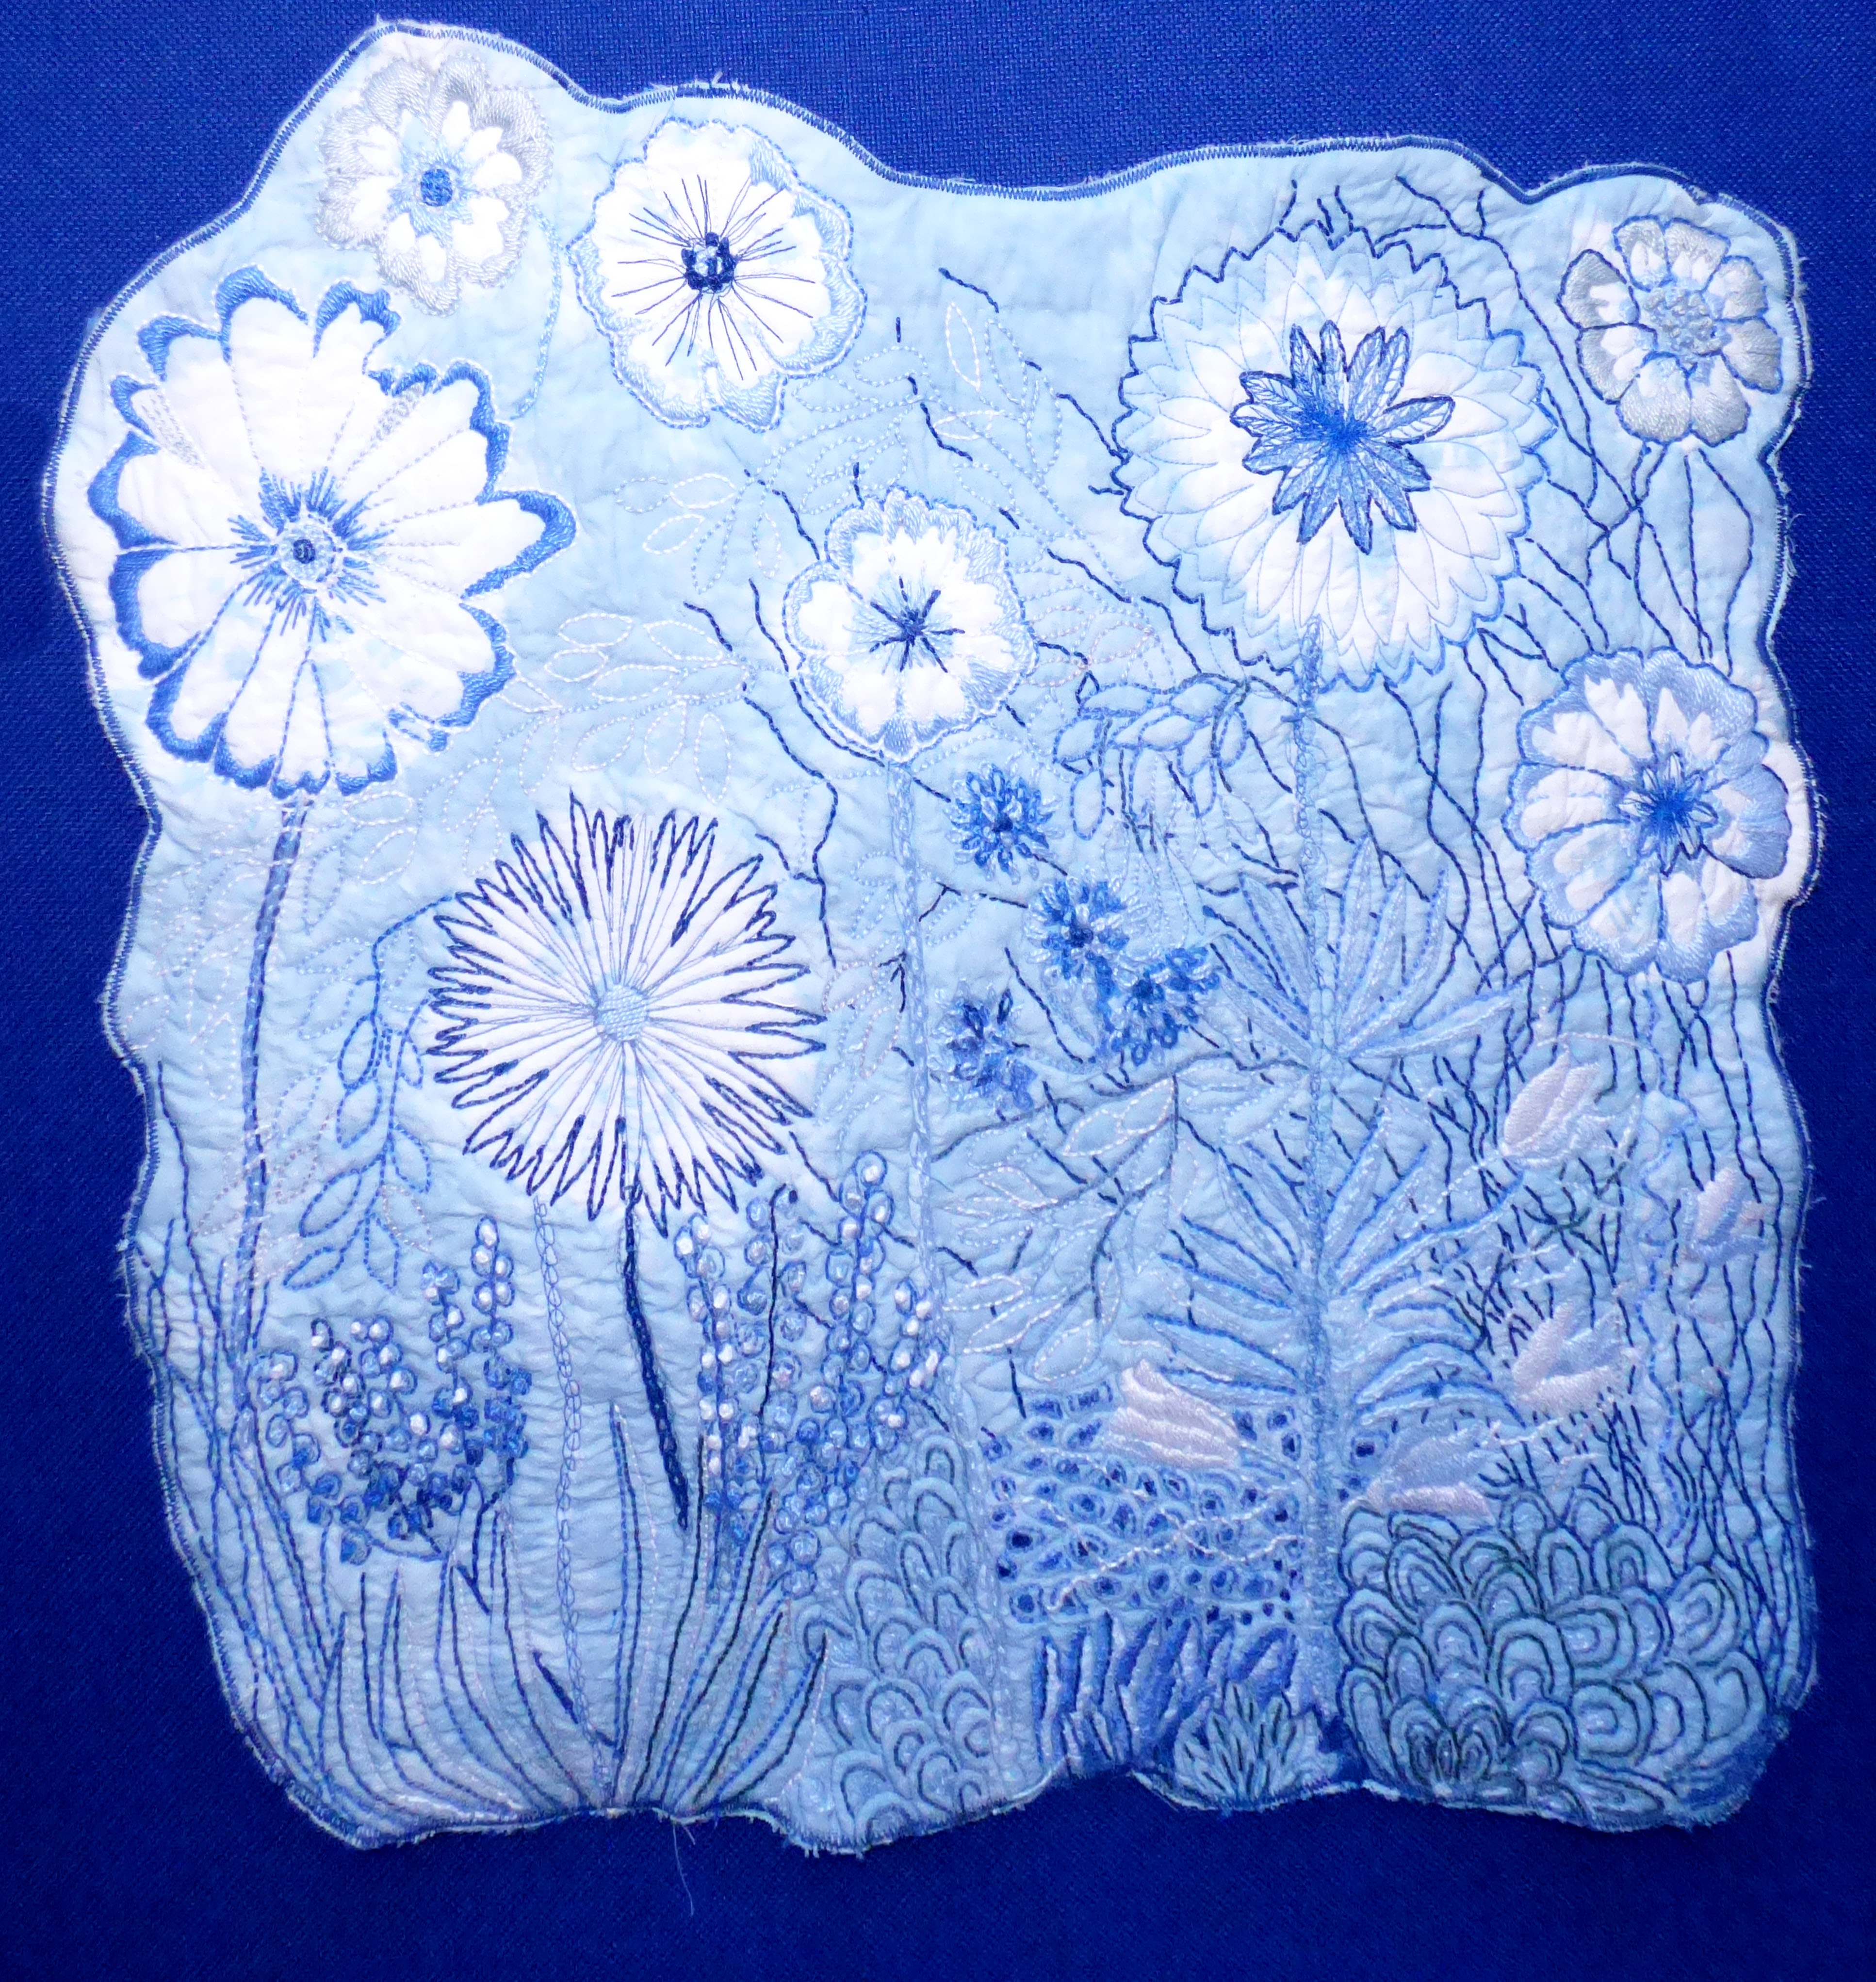 WILD FLOWER MEADOW by Sue Tressidor, Contemporary Threads group, March 2020